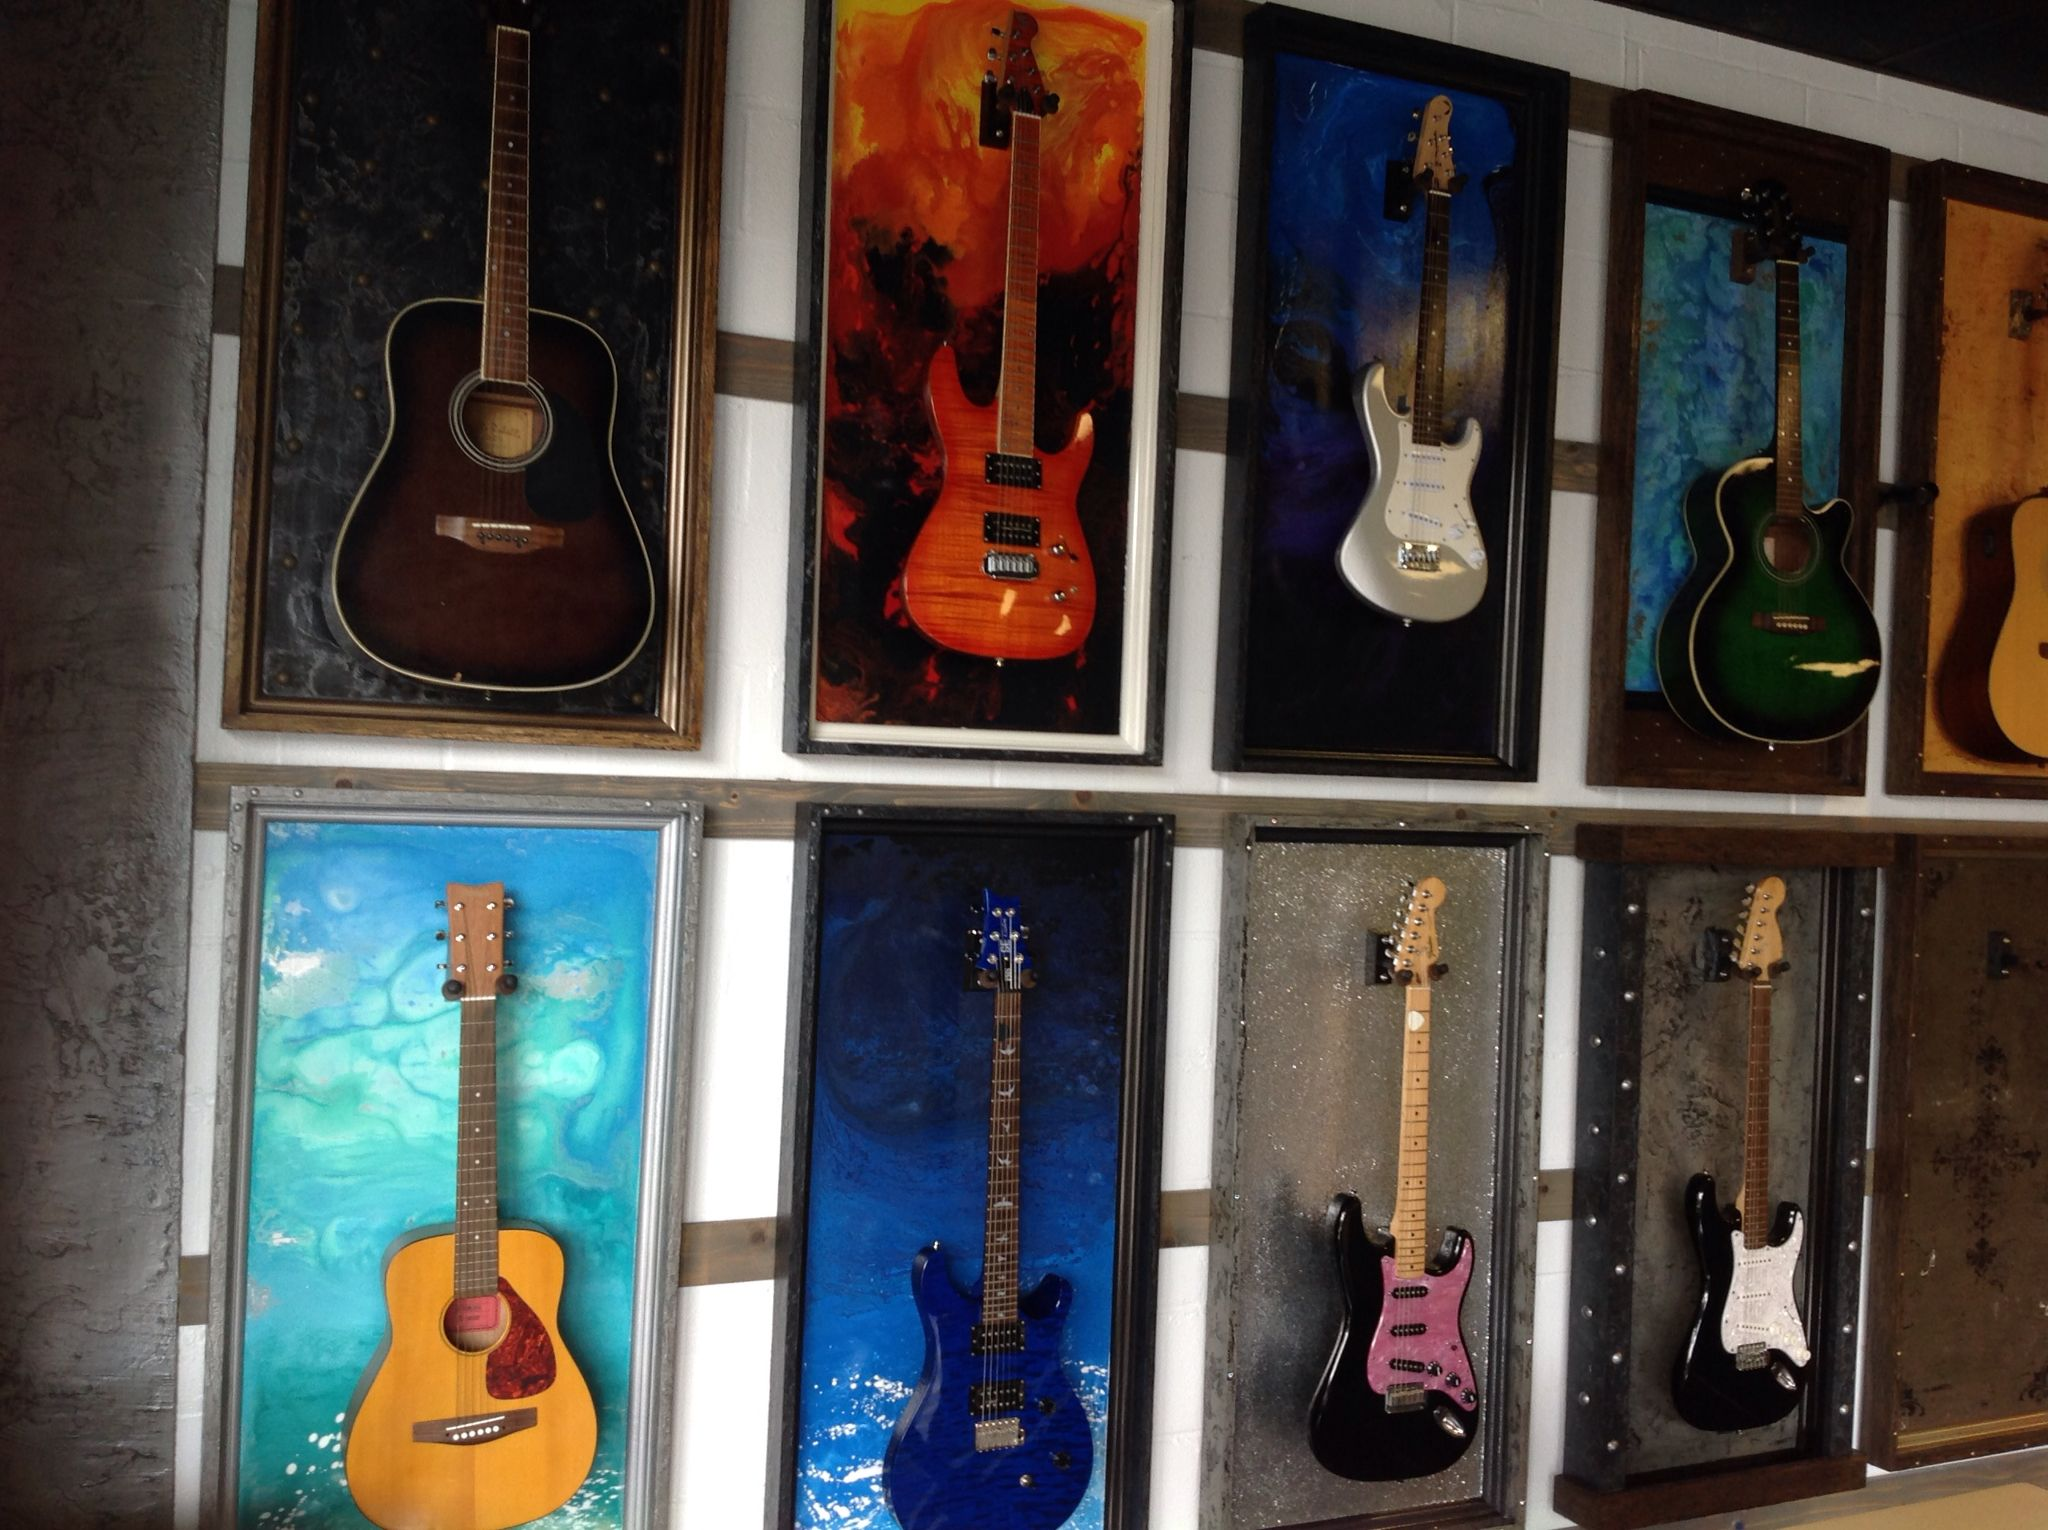 Gframes g frames guitar display cases guitar display cases gframes g frames guitar display cases jeuxipadfo Gallery